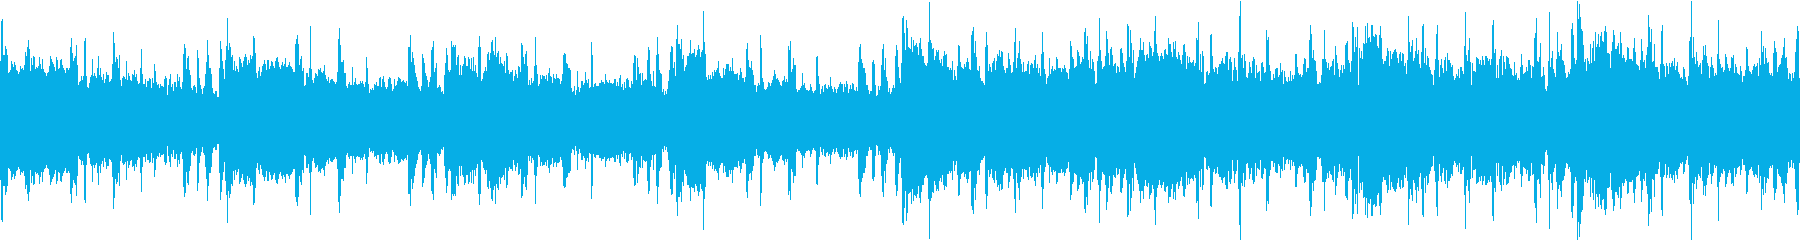 A Chilled Pop Gro...'s reproduced waveform